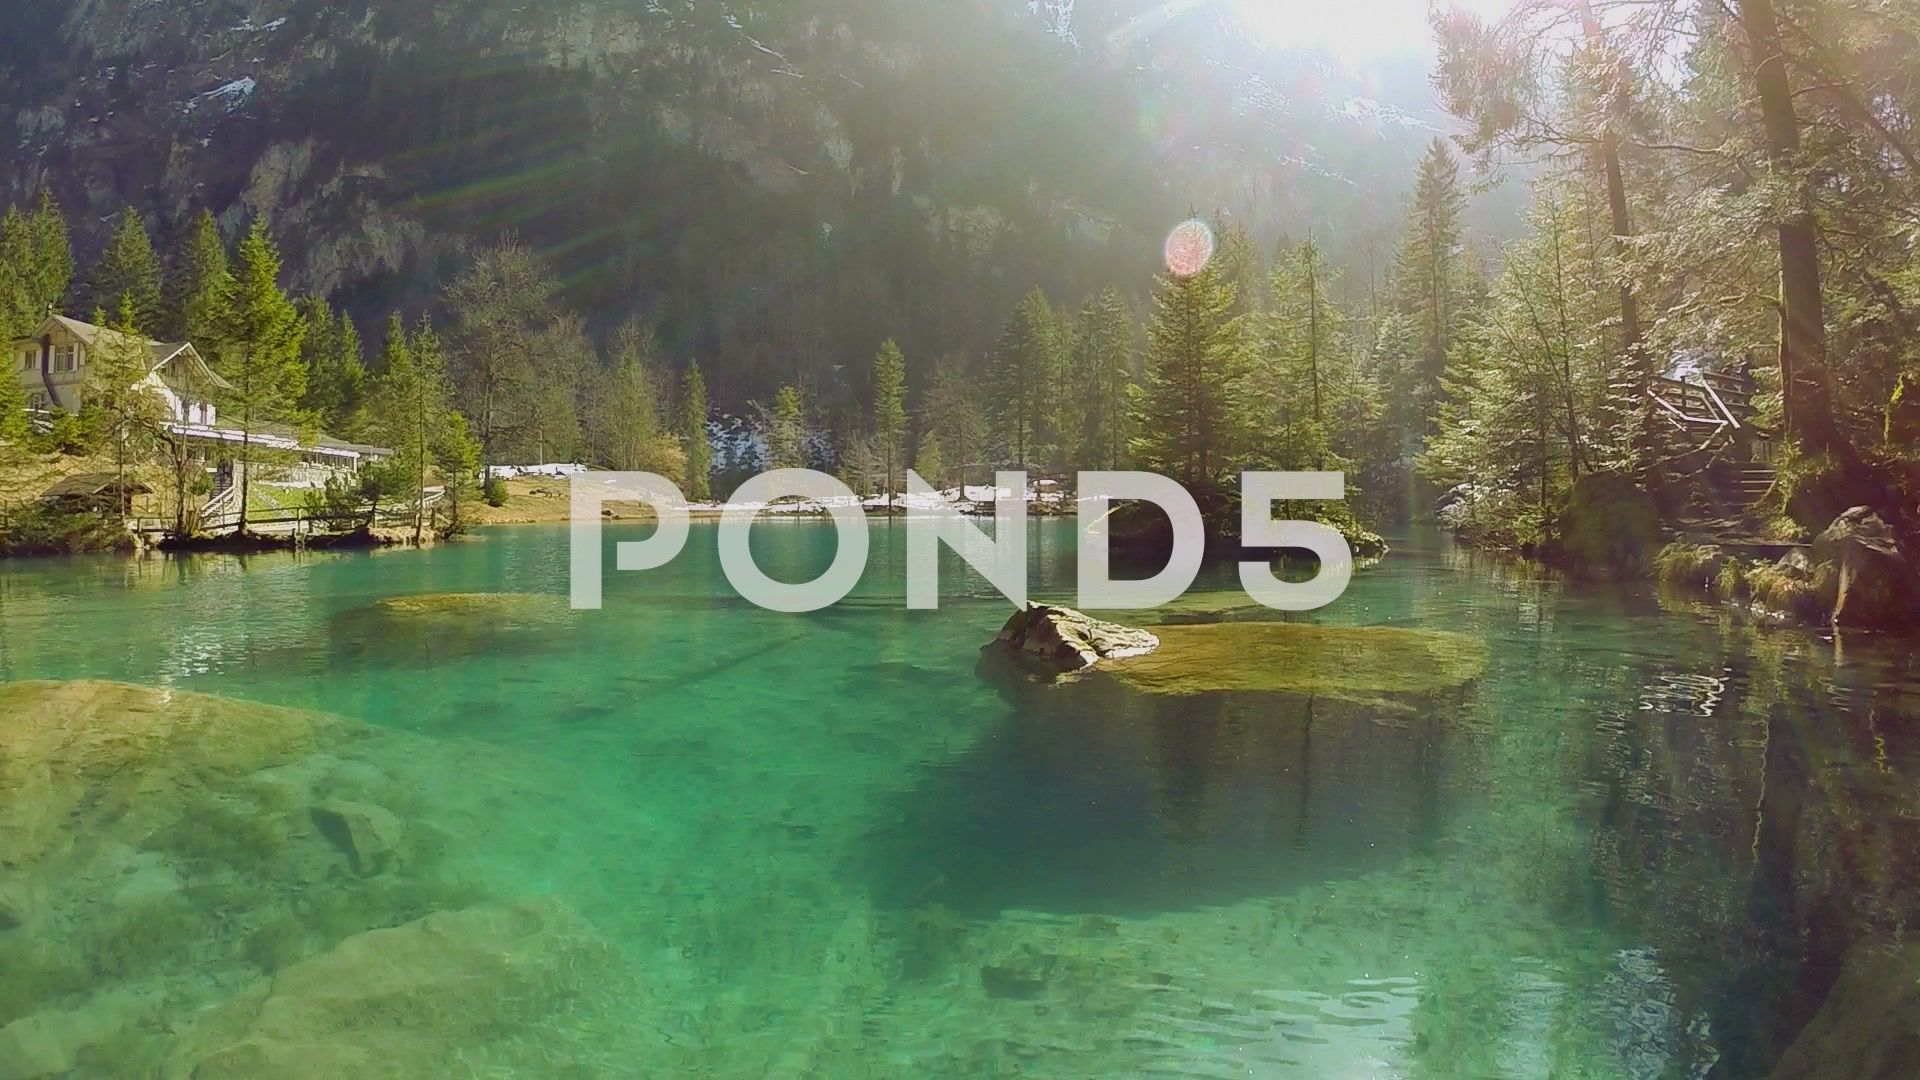 Lake Resort Pond Turquoise Water Nature Background Aerial View Fly Over Stock Footage Turquois Landscape Scenery Nature Backgrounds Landscape Design Plans